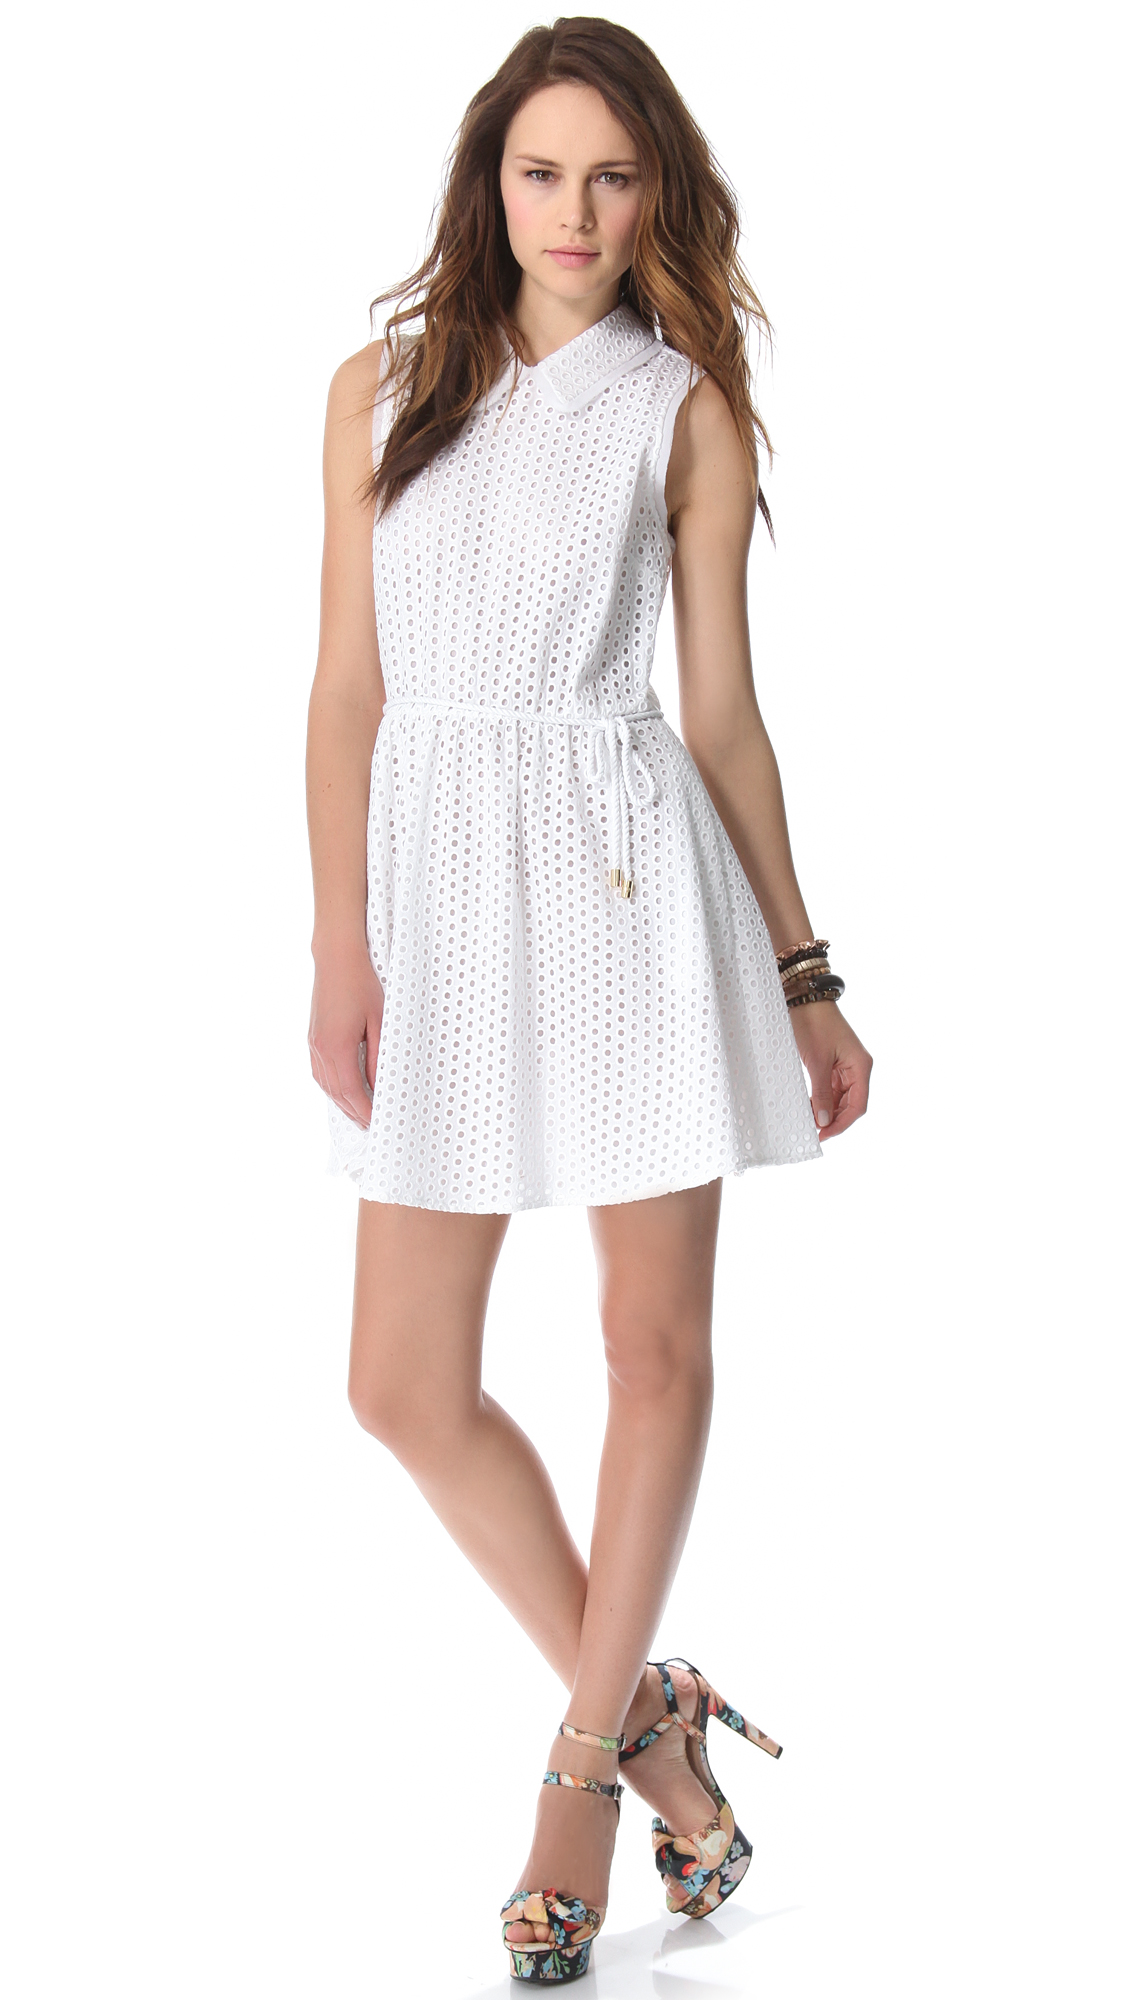 Juicy couture eyelet dress in white lyst for A couture dress